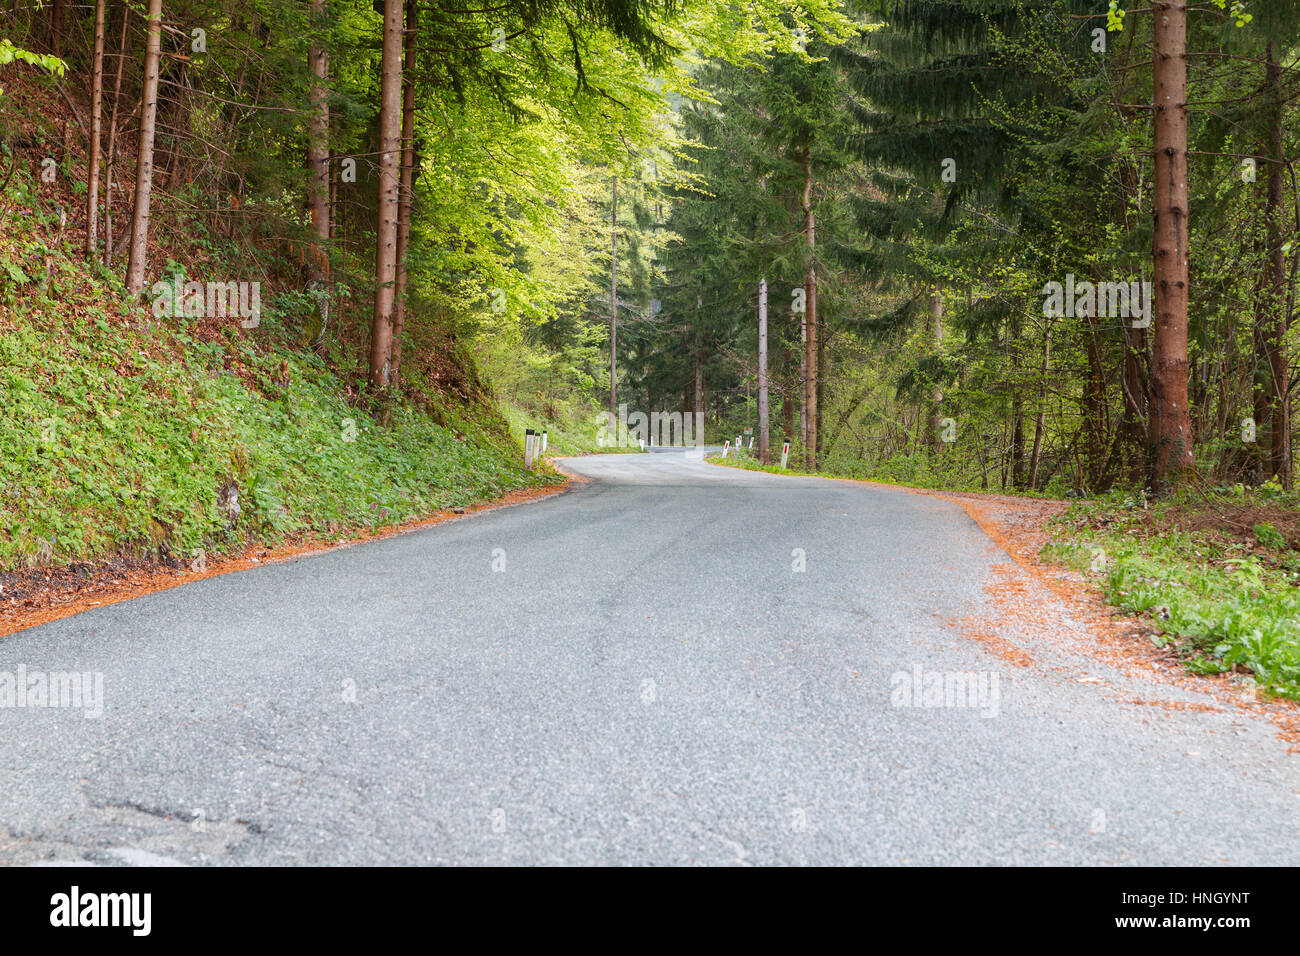 Winding woodland mountain road at spring in Slovenia,Europe Stock Photo